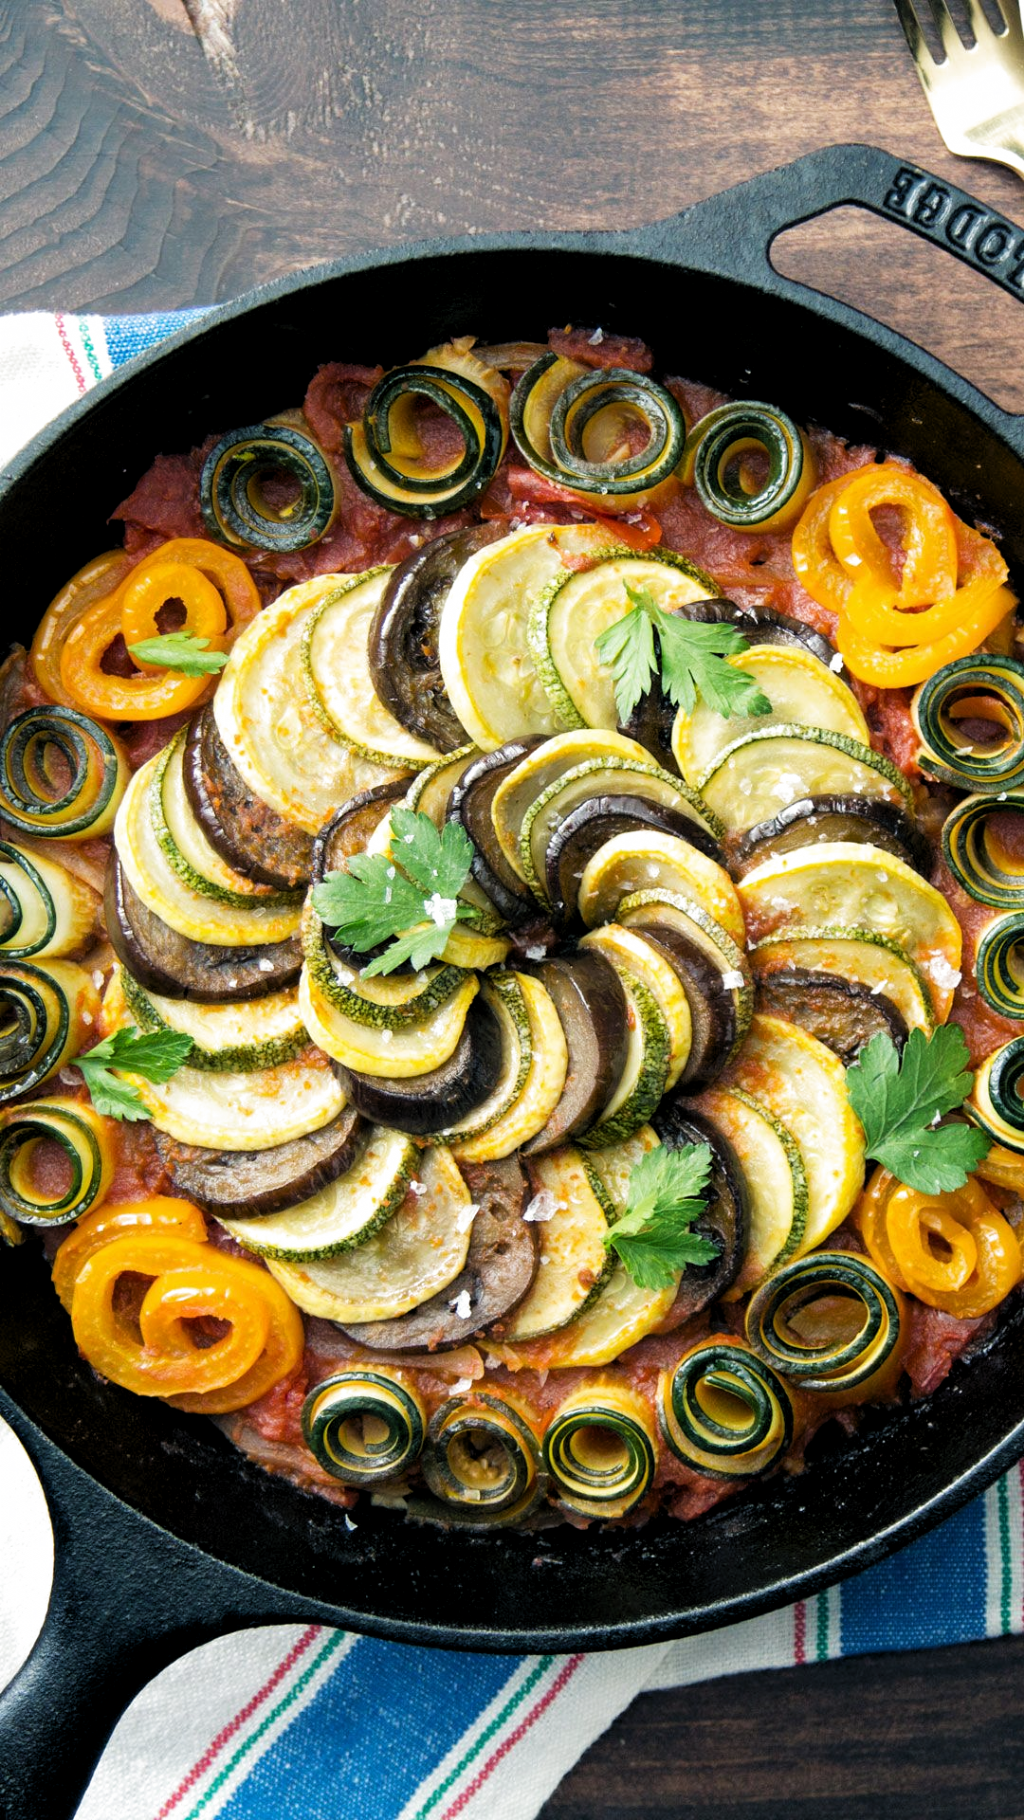 Yes This Classic French Dish Made Of Eggplants Zucchinis Squash And More Is Even Easier Than You Thou I 2020 Ratatouille Opskrift Madopskrifter Veganske Opskrifter